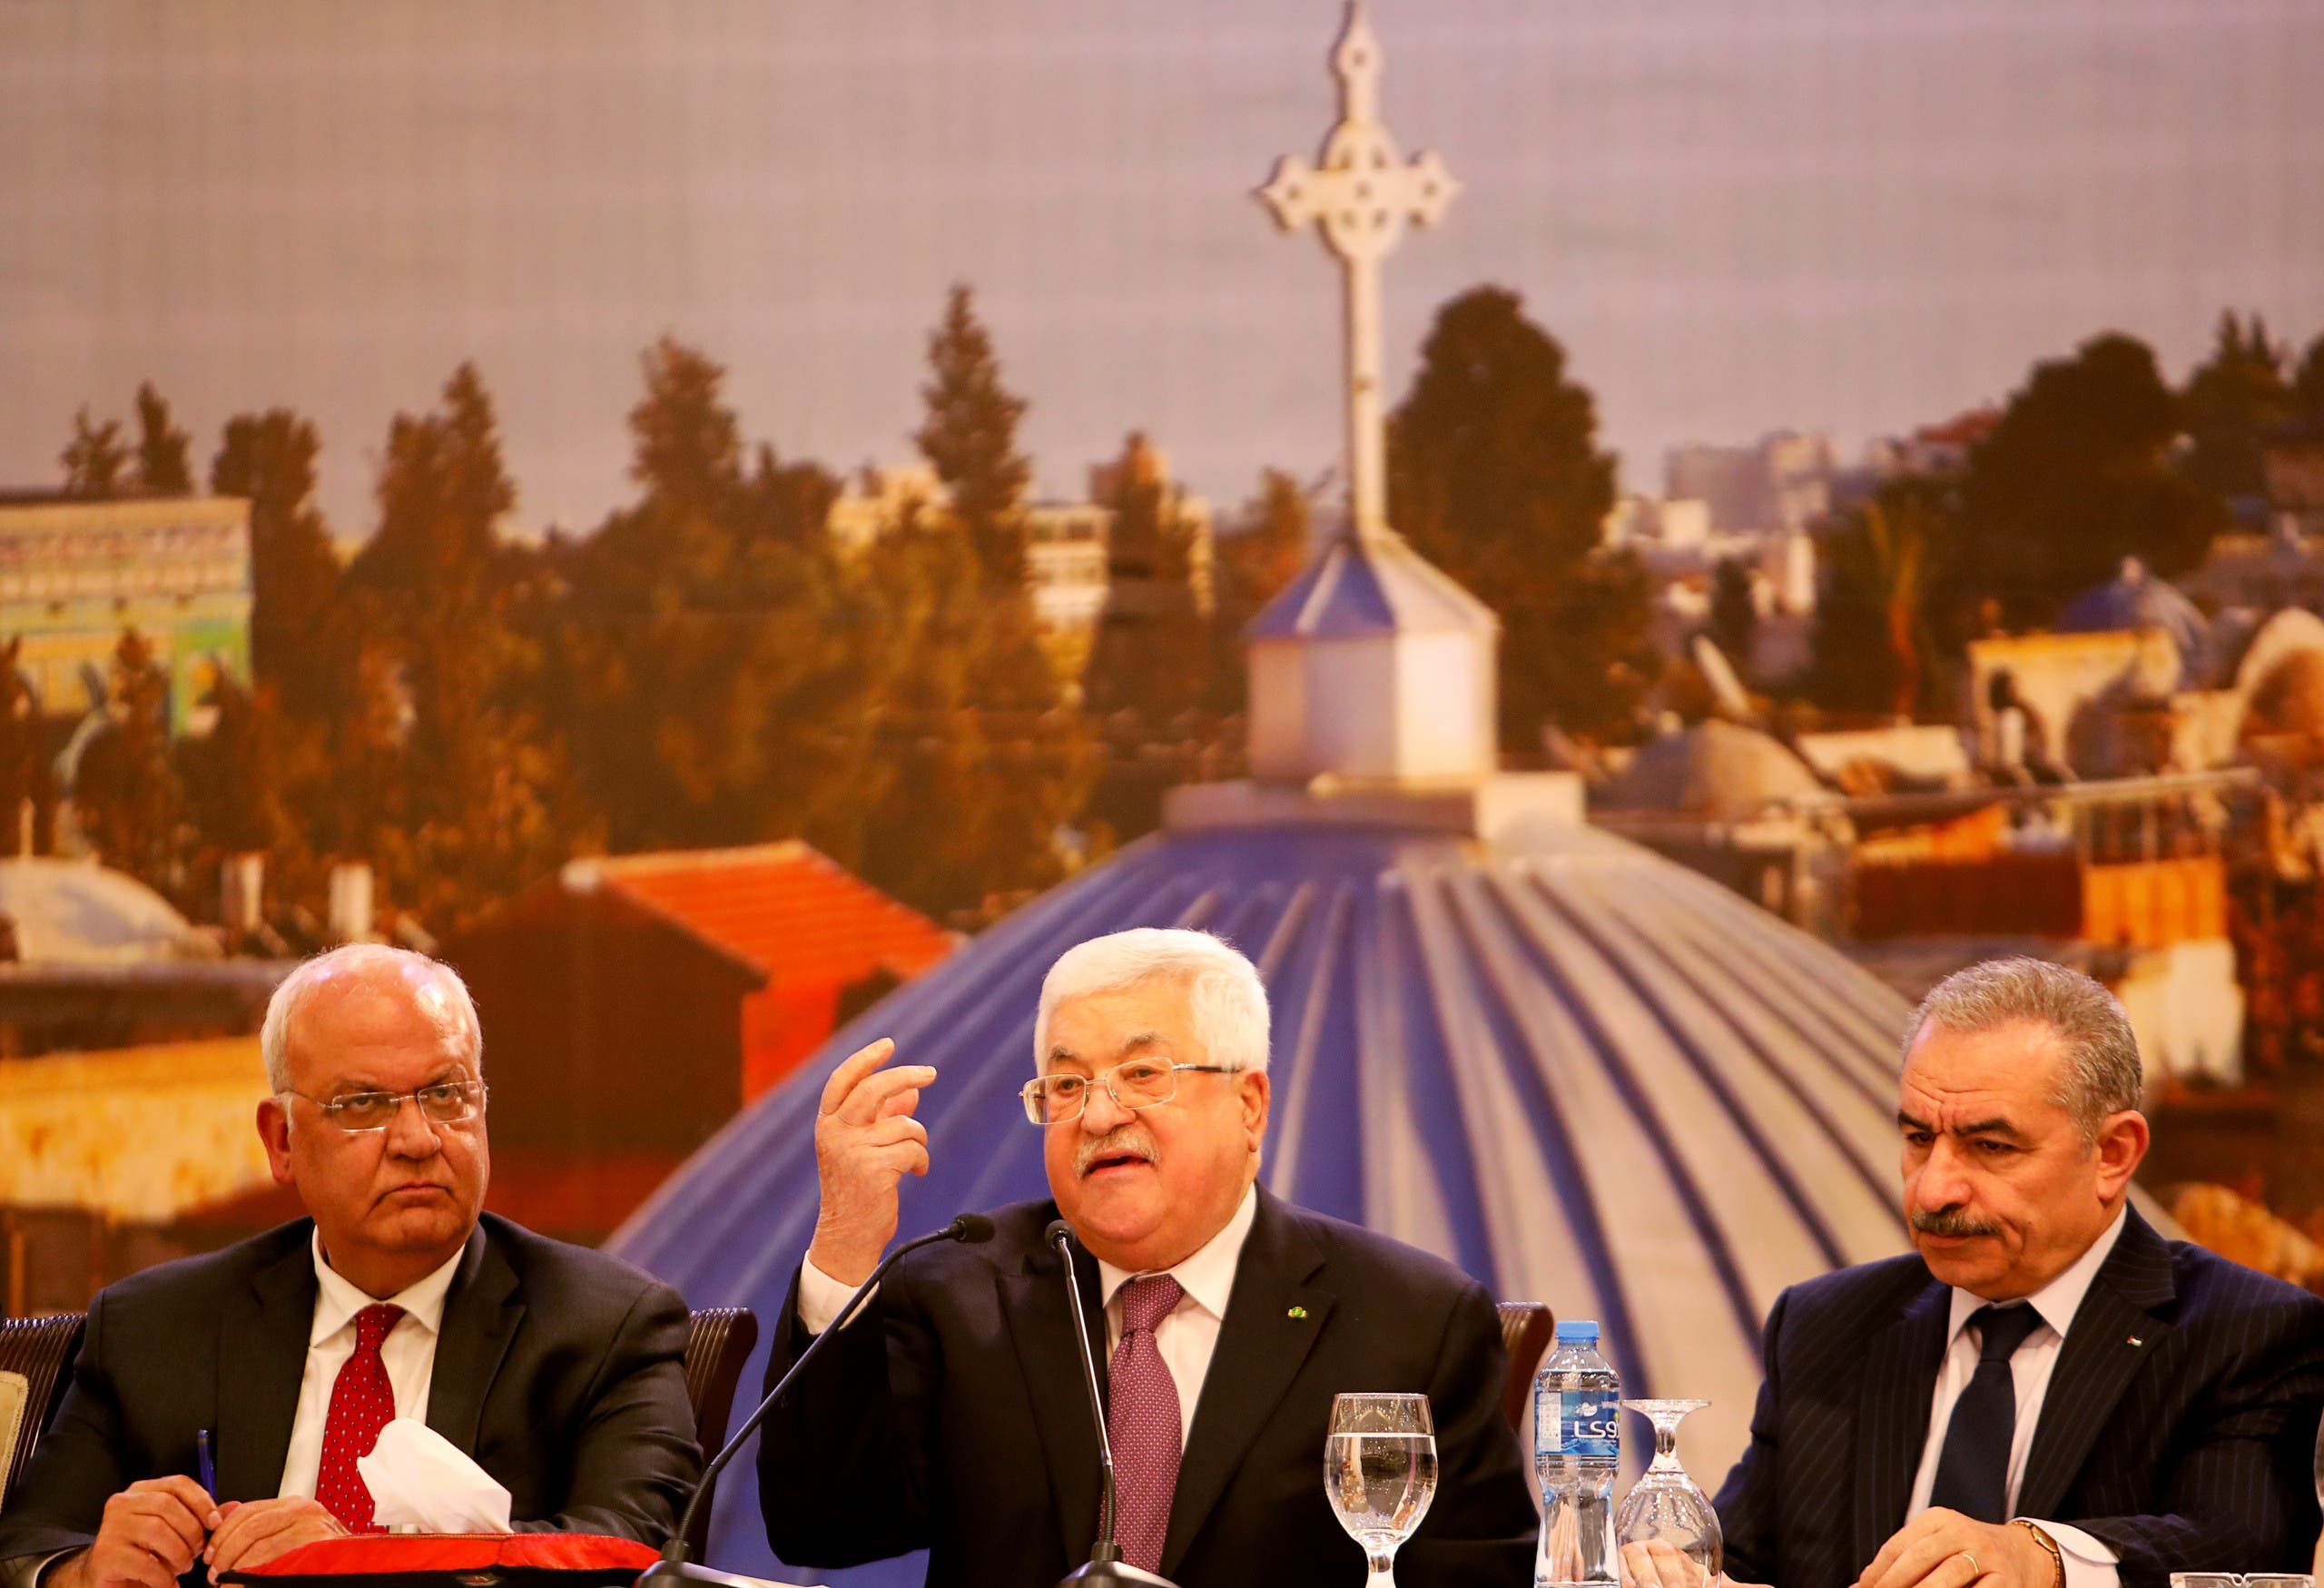 Palestinian President Mahmoud Abbas delivers a speech in Ramallah in the Israeli-occupied West Bank January 28, 2020. (Reuters)